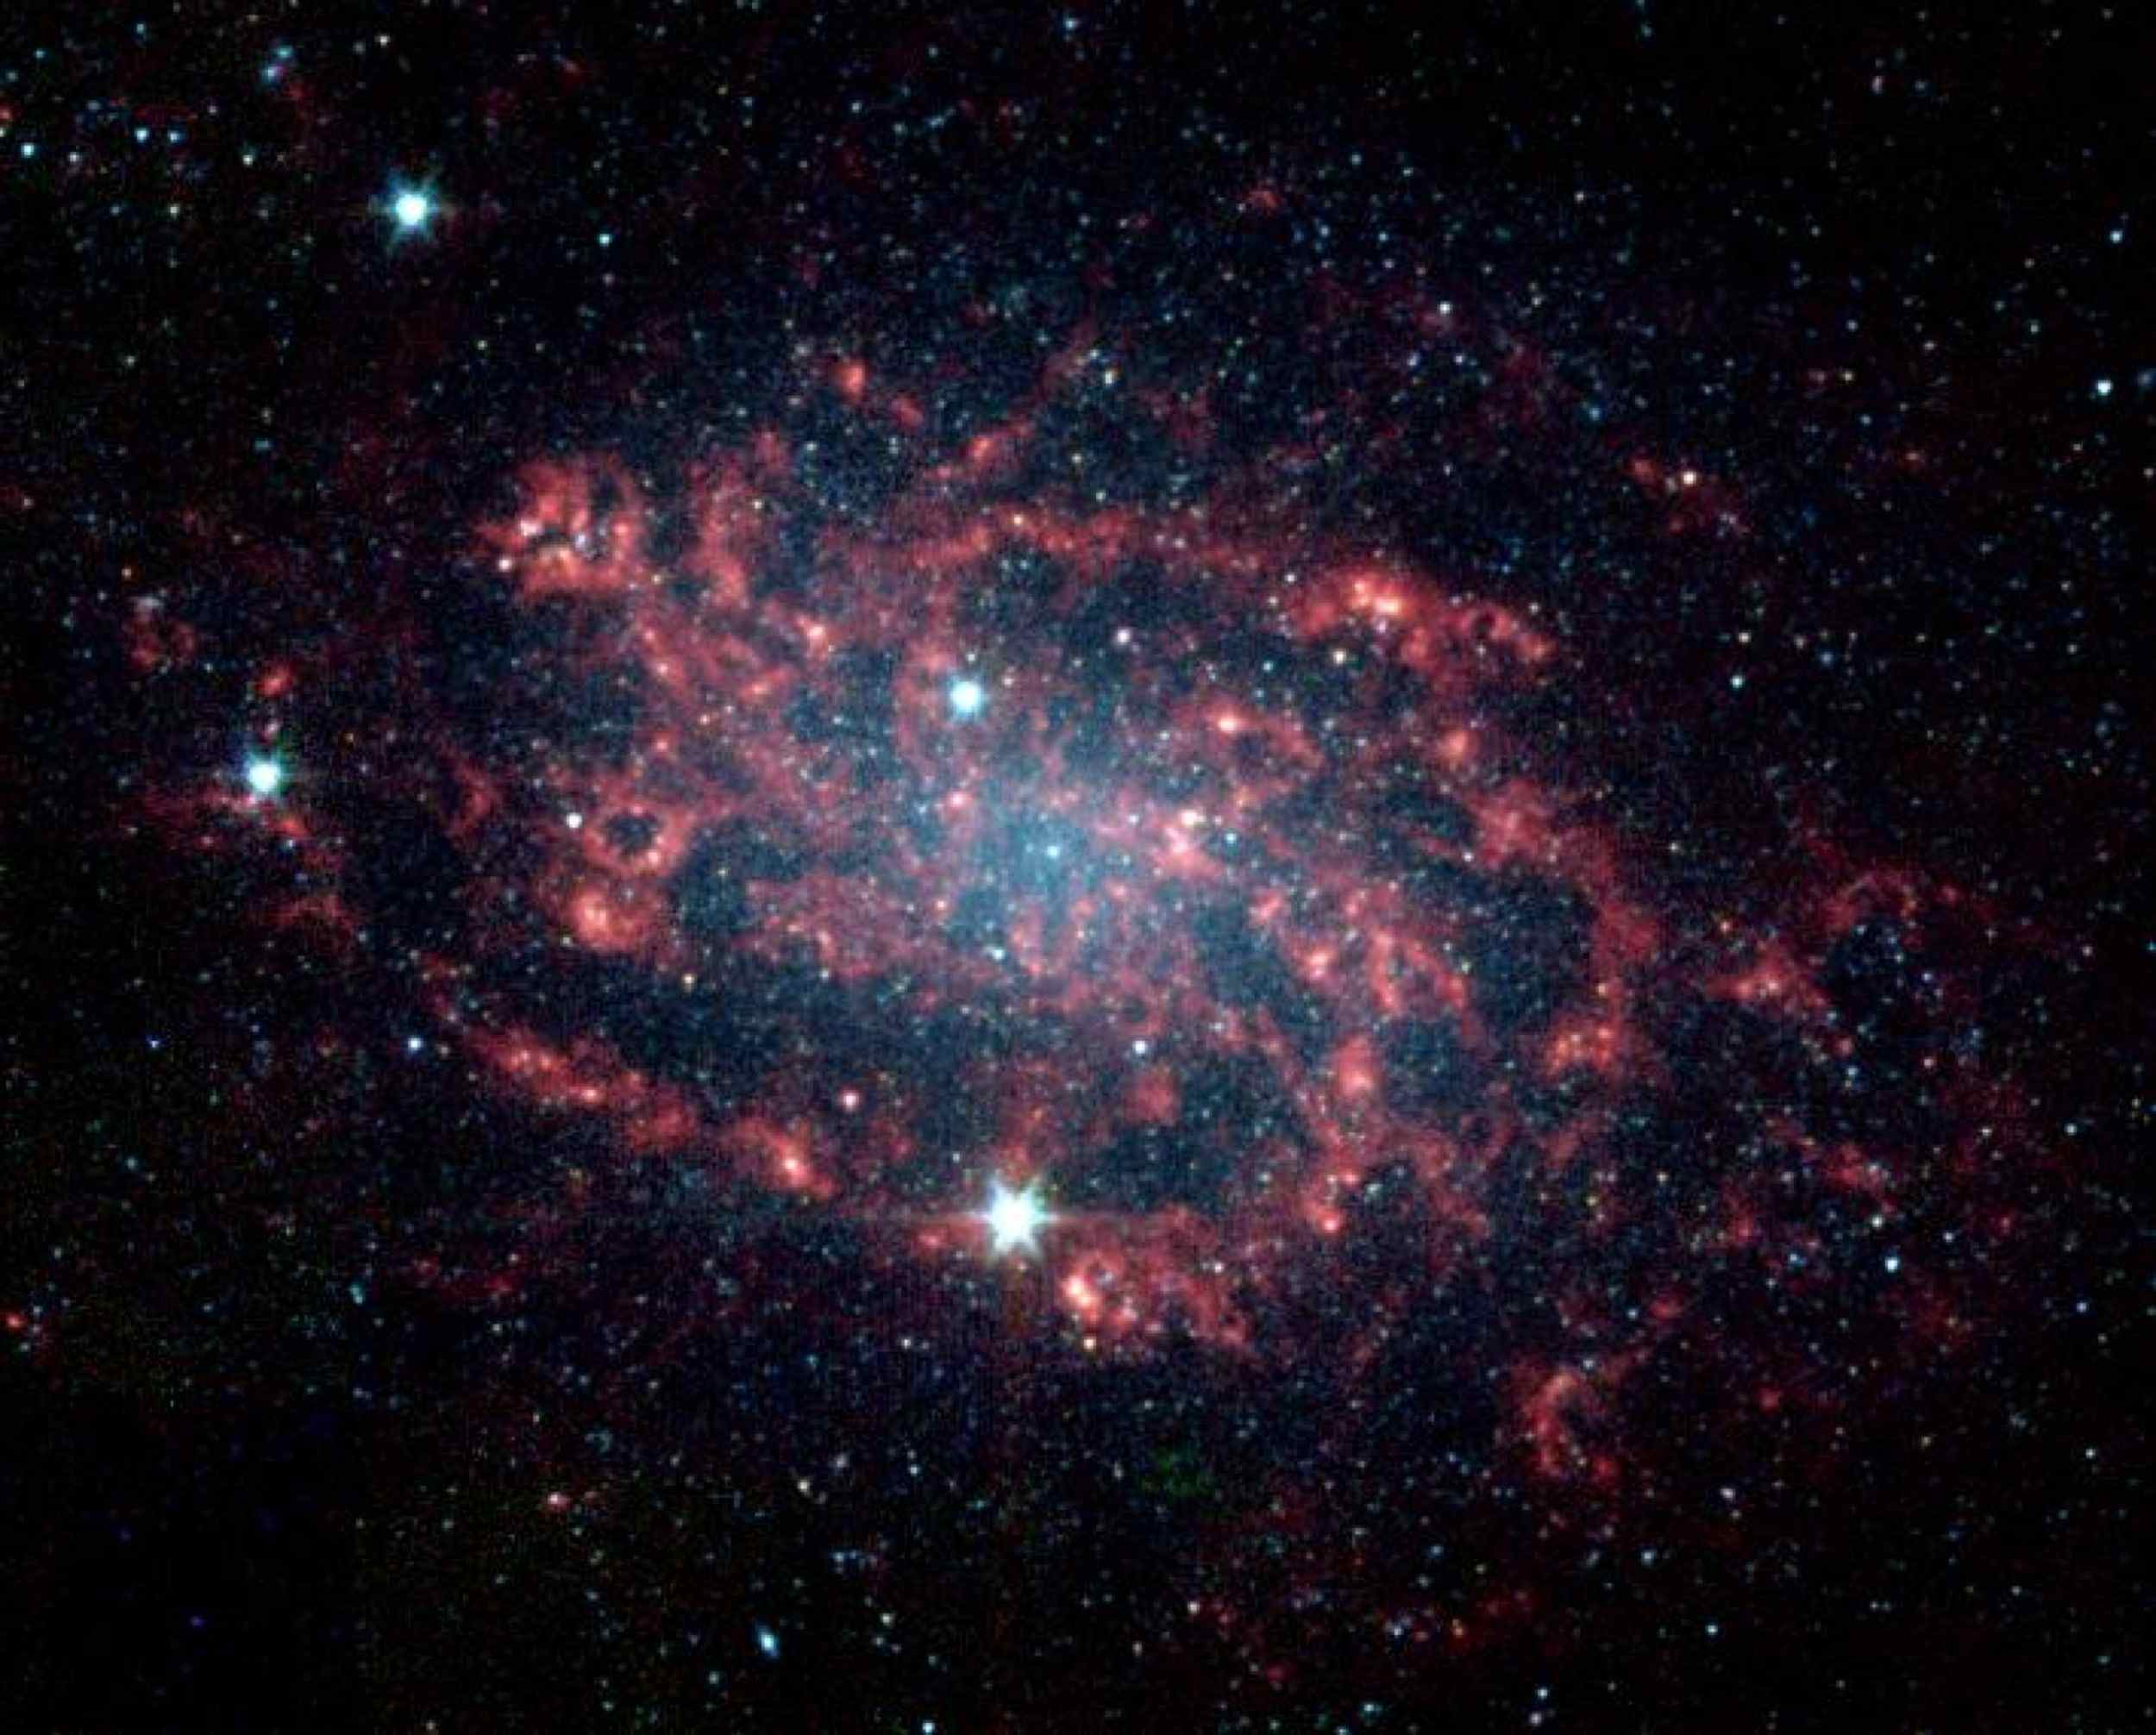 Sometimes, the best way to understand how something works is to take it apart. The same is true for galaxies like NGC 300, which NASA's Spitzer Space Telescope has divided into its various parts.